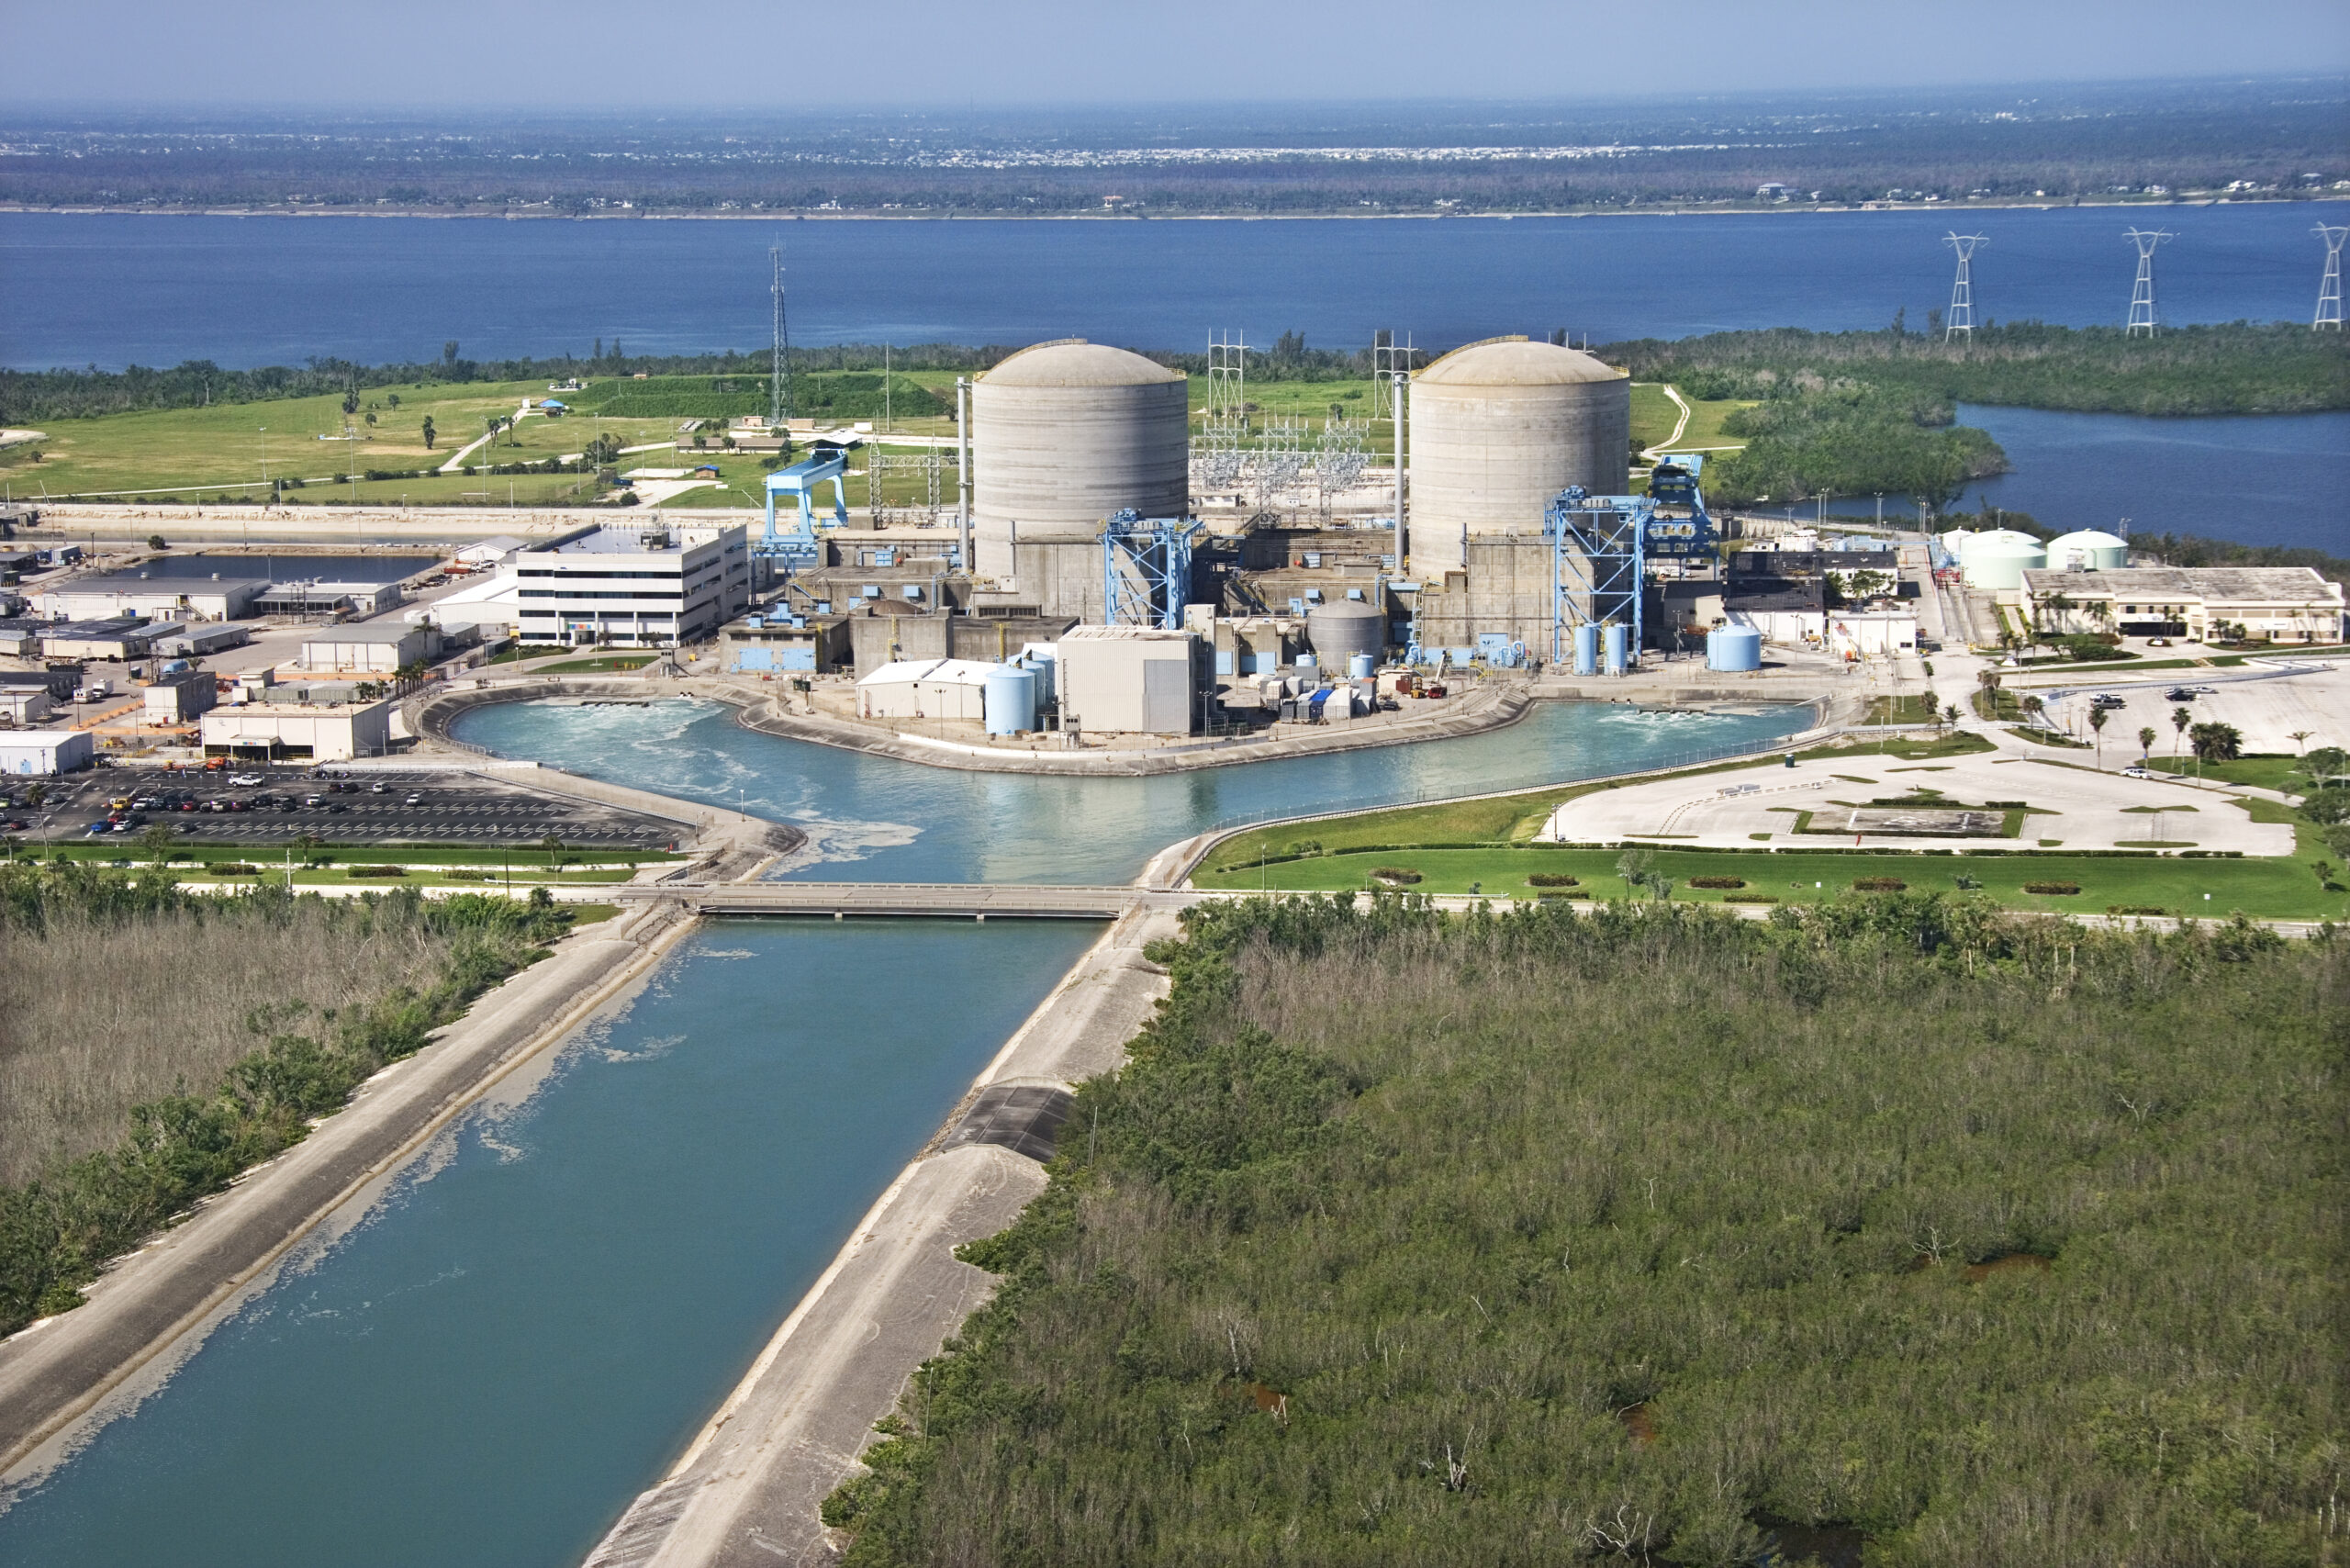 Lawsuit Launched to Force Federal Government to Protect Endangered Species from Nuclear Power Plant in Florida